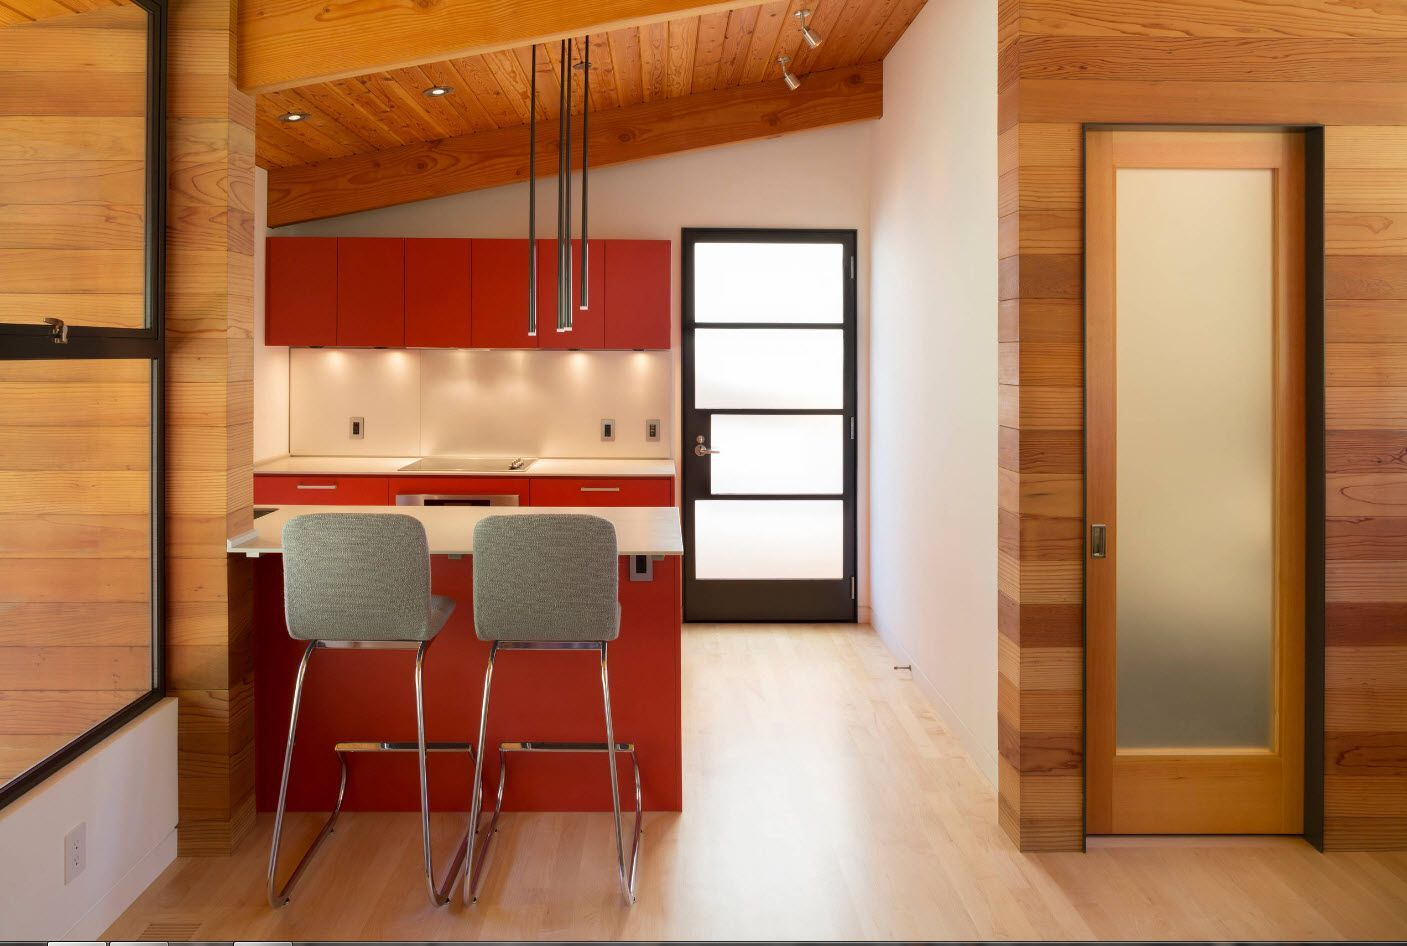 Slanting wooden ceiling and the red sttold at the forefront